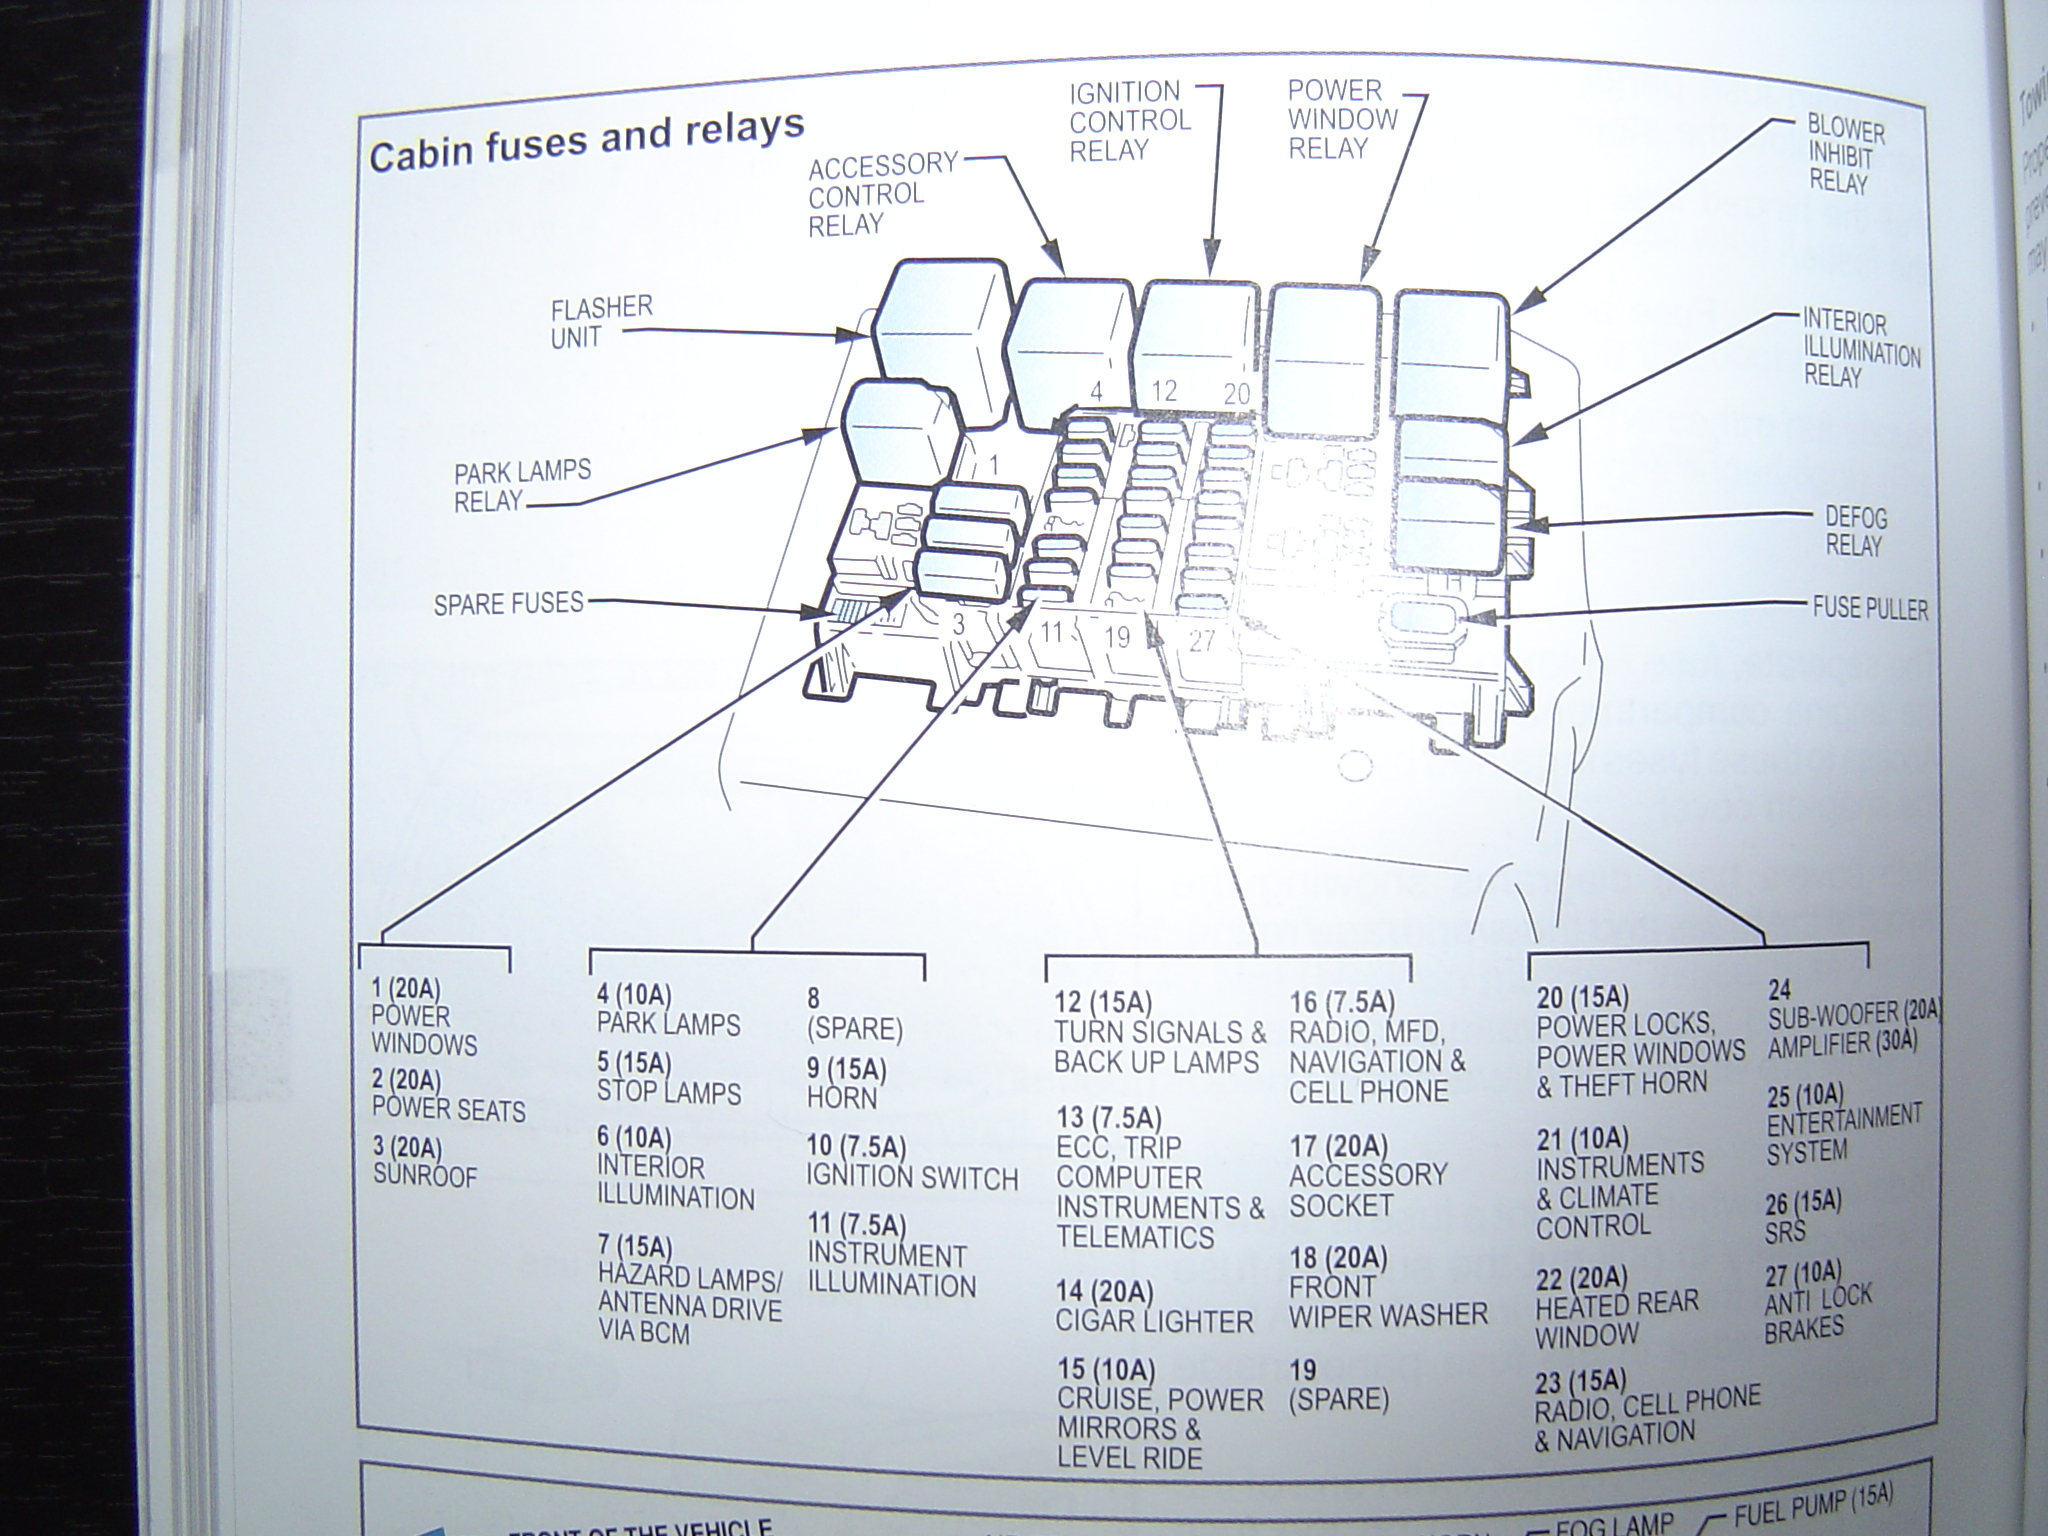 VY_CABIN_FUSEBOX cabin fuse box diagrams ba bf vx vy vz ve venus box at readyjetset.co